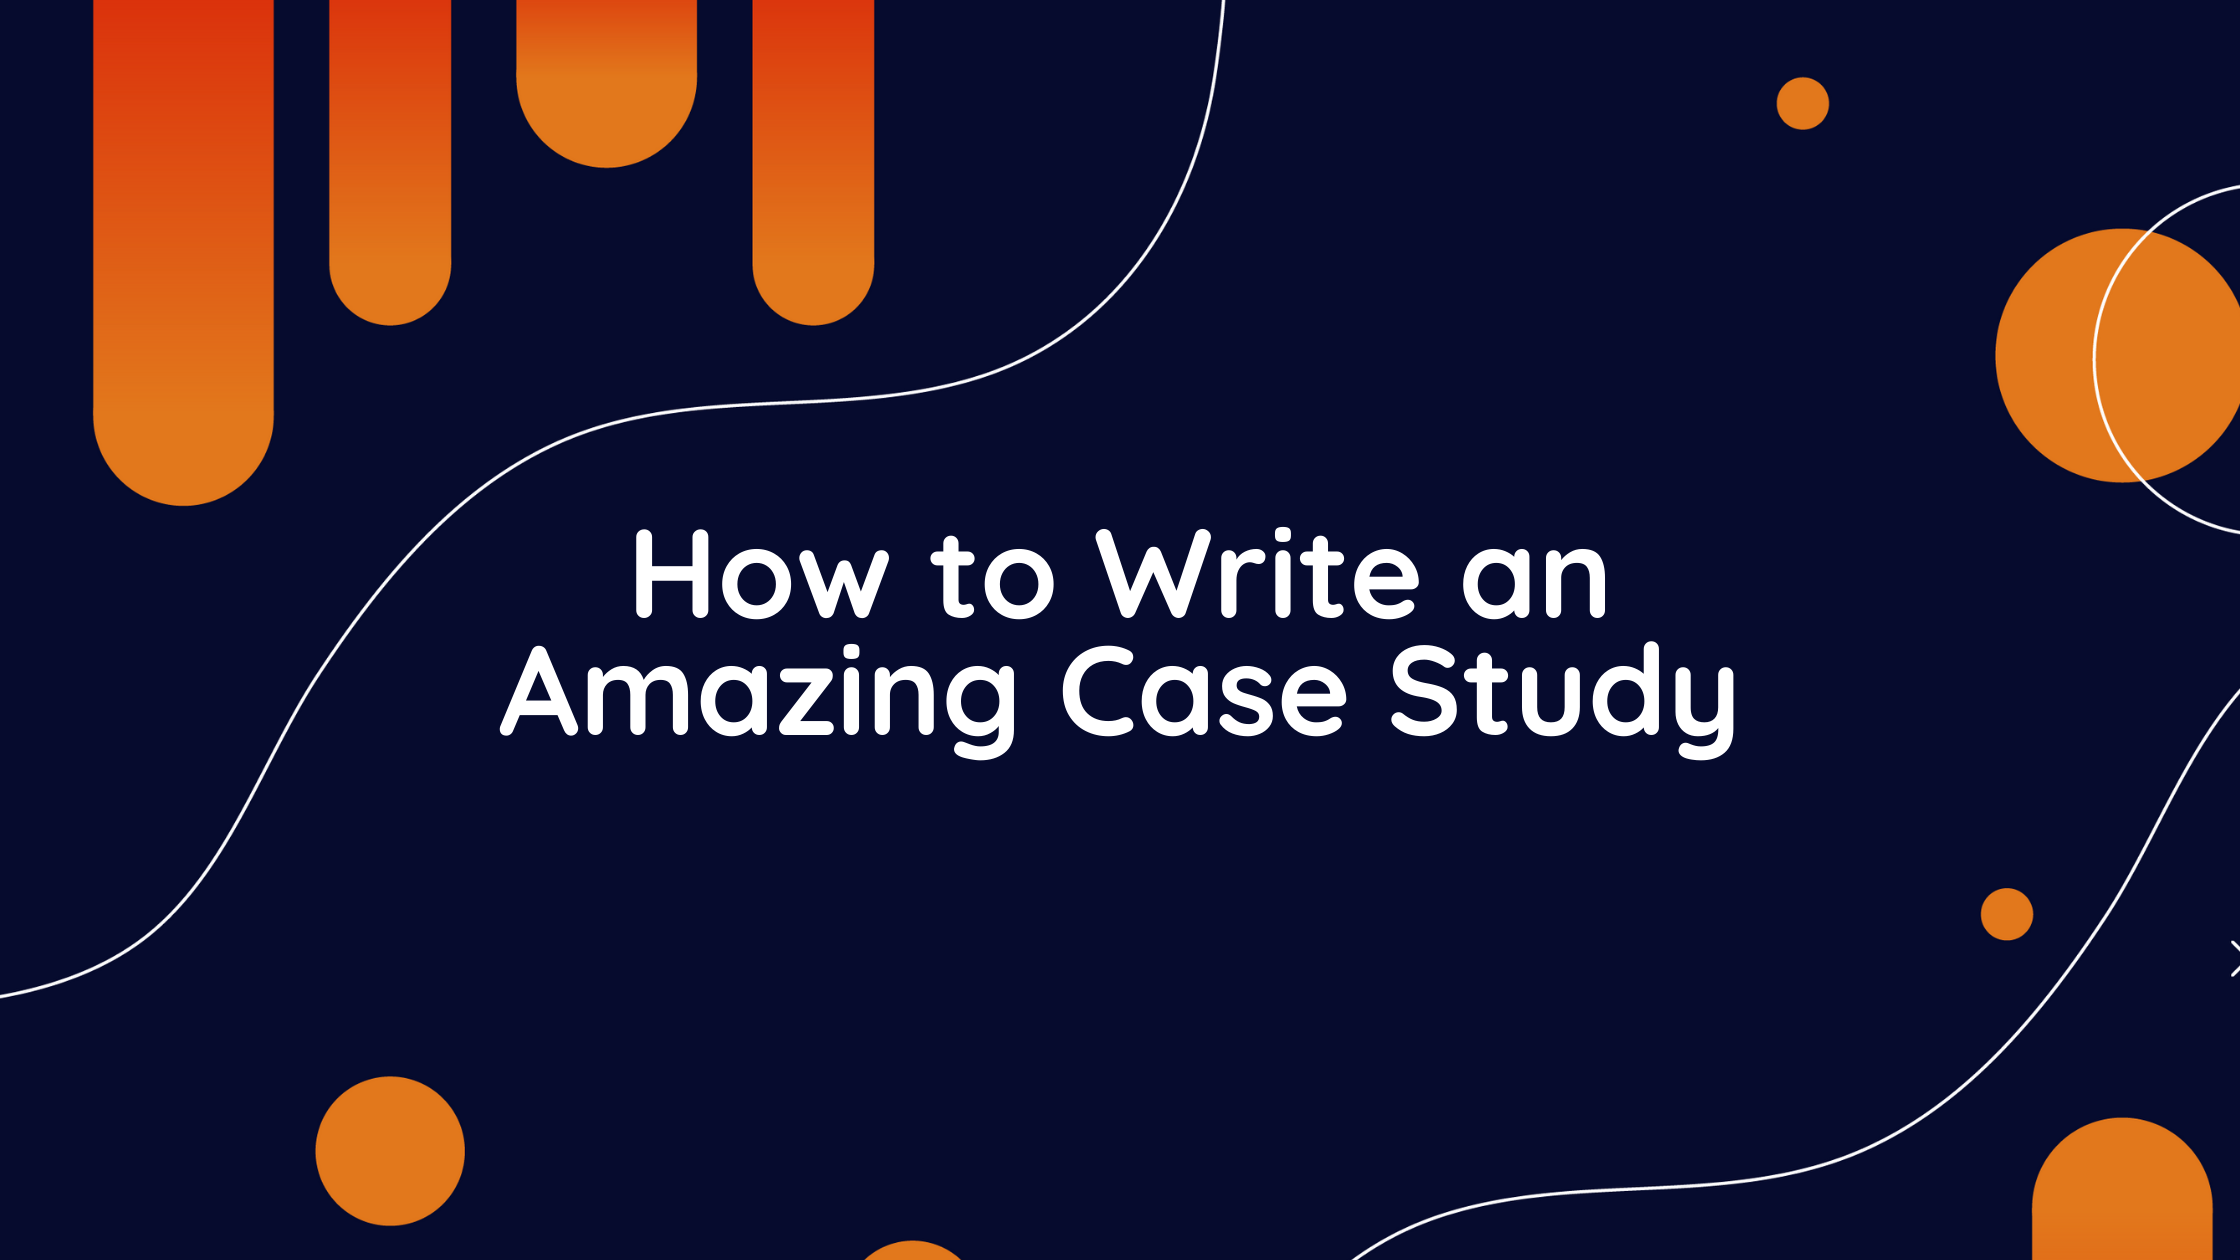 how to write an amazing case study, amazing case study, case study, how to make a case study, create case studies, sample case studies